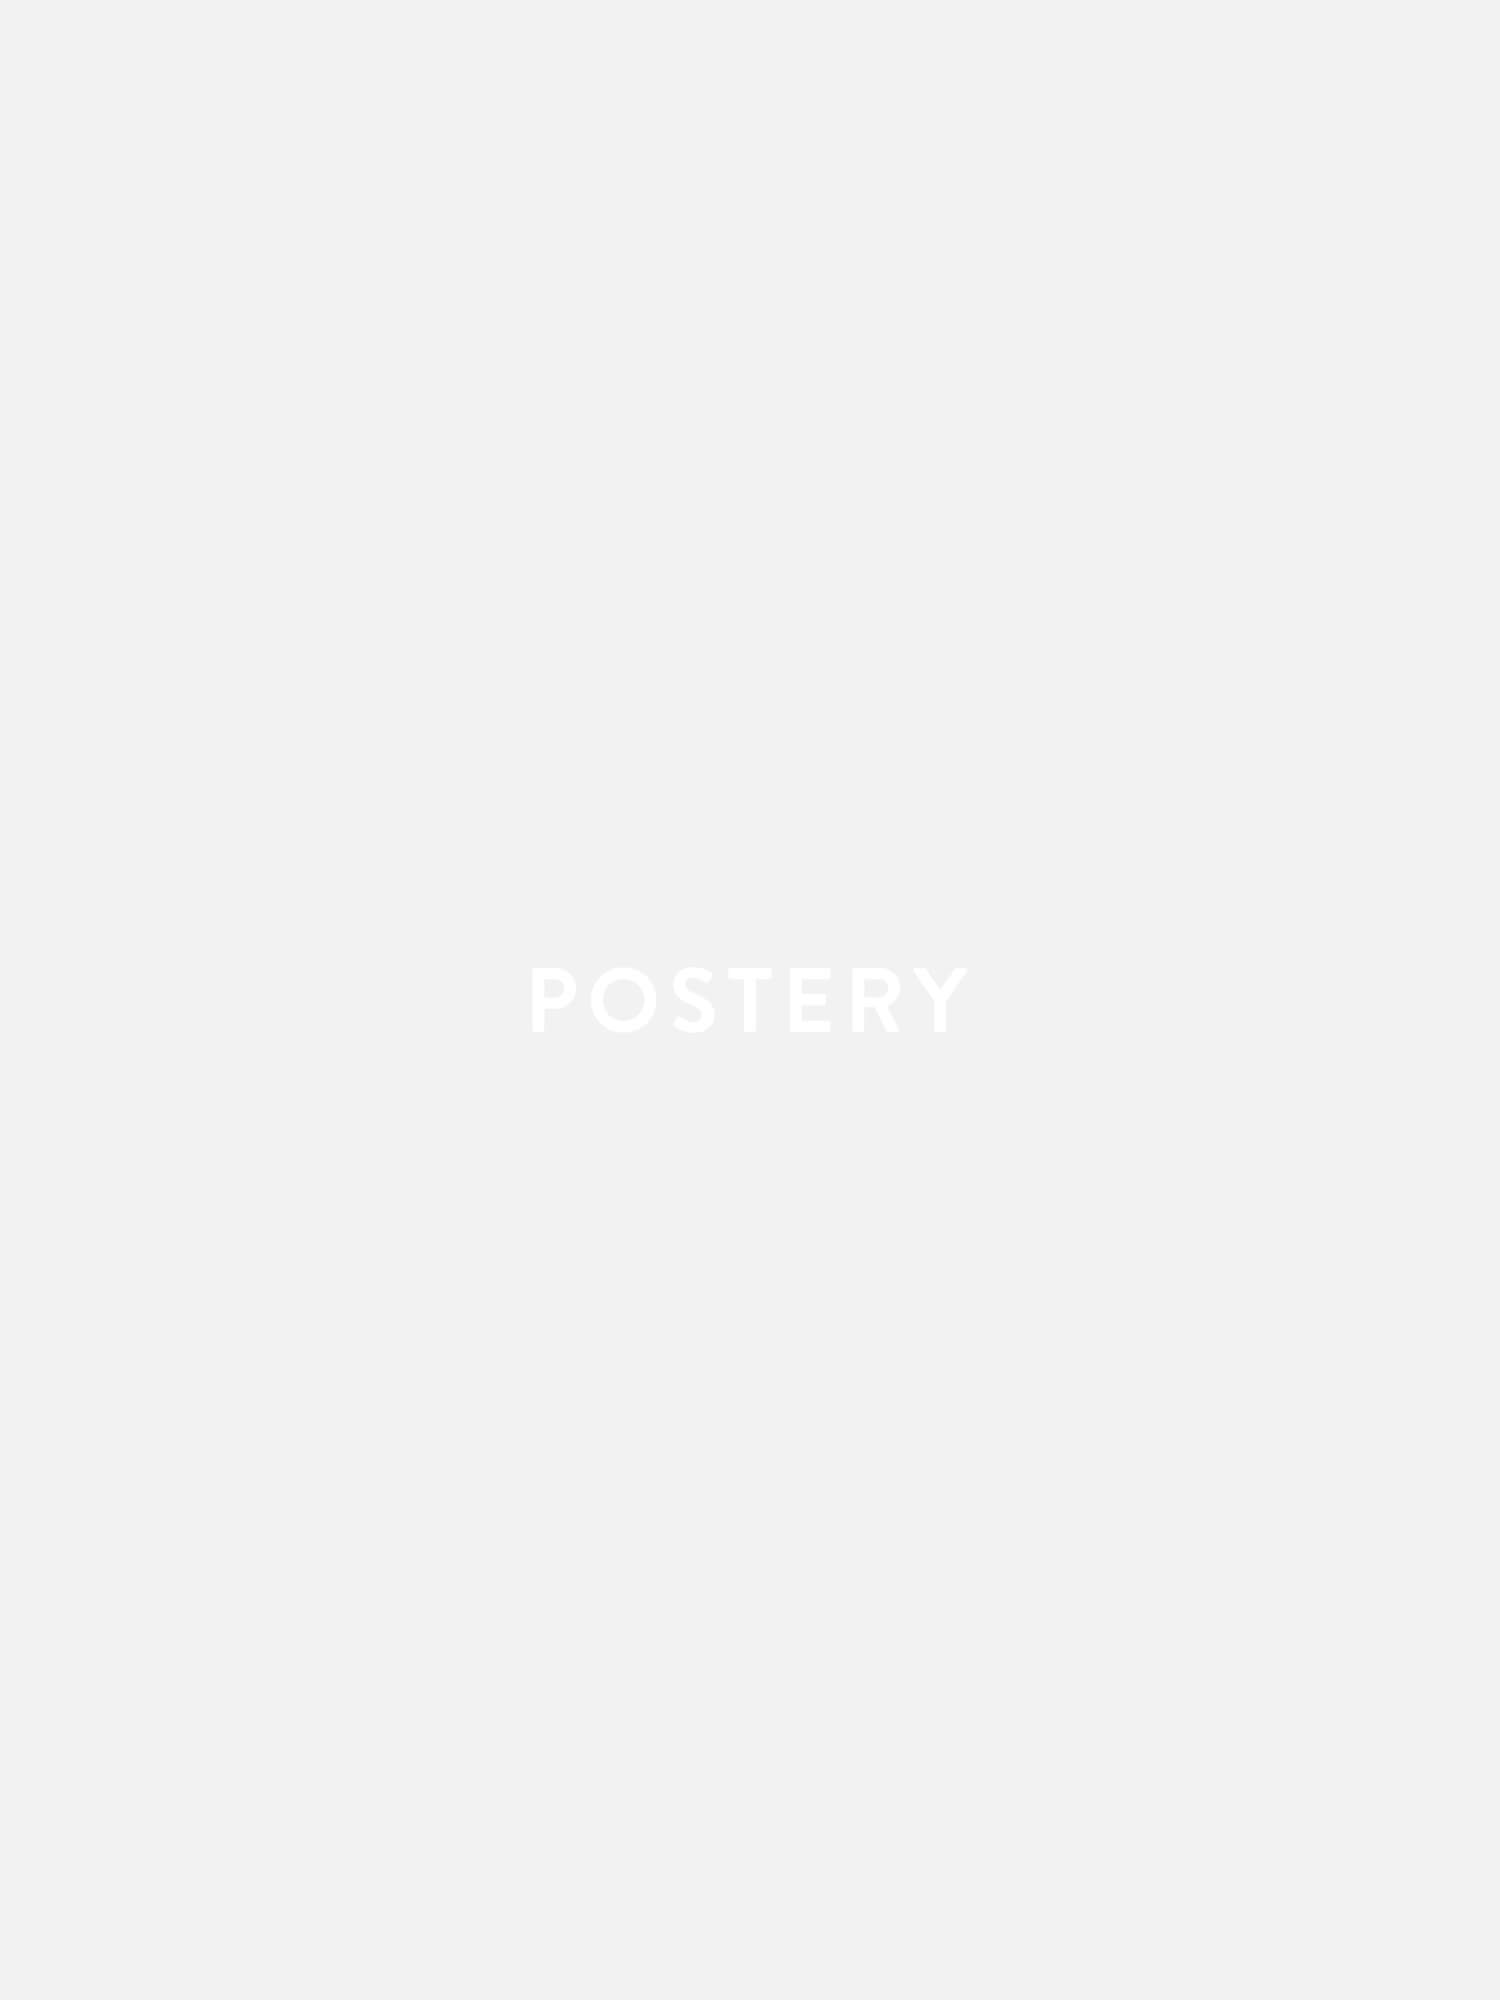 Green Waterfall no.1 Poster